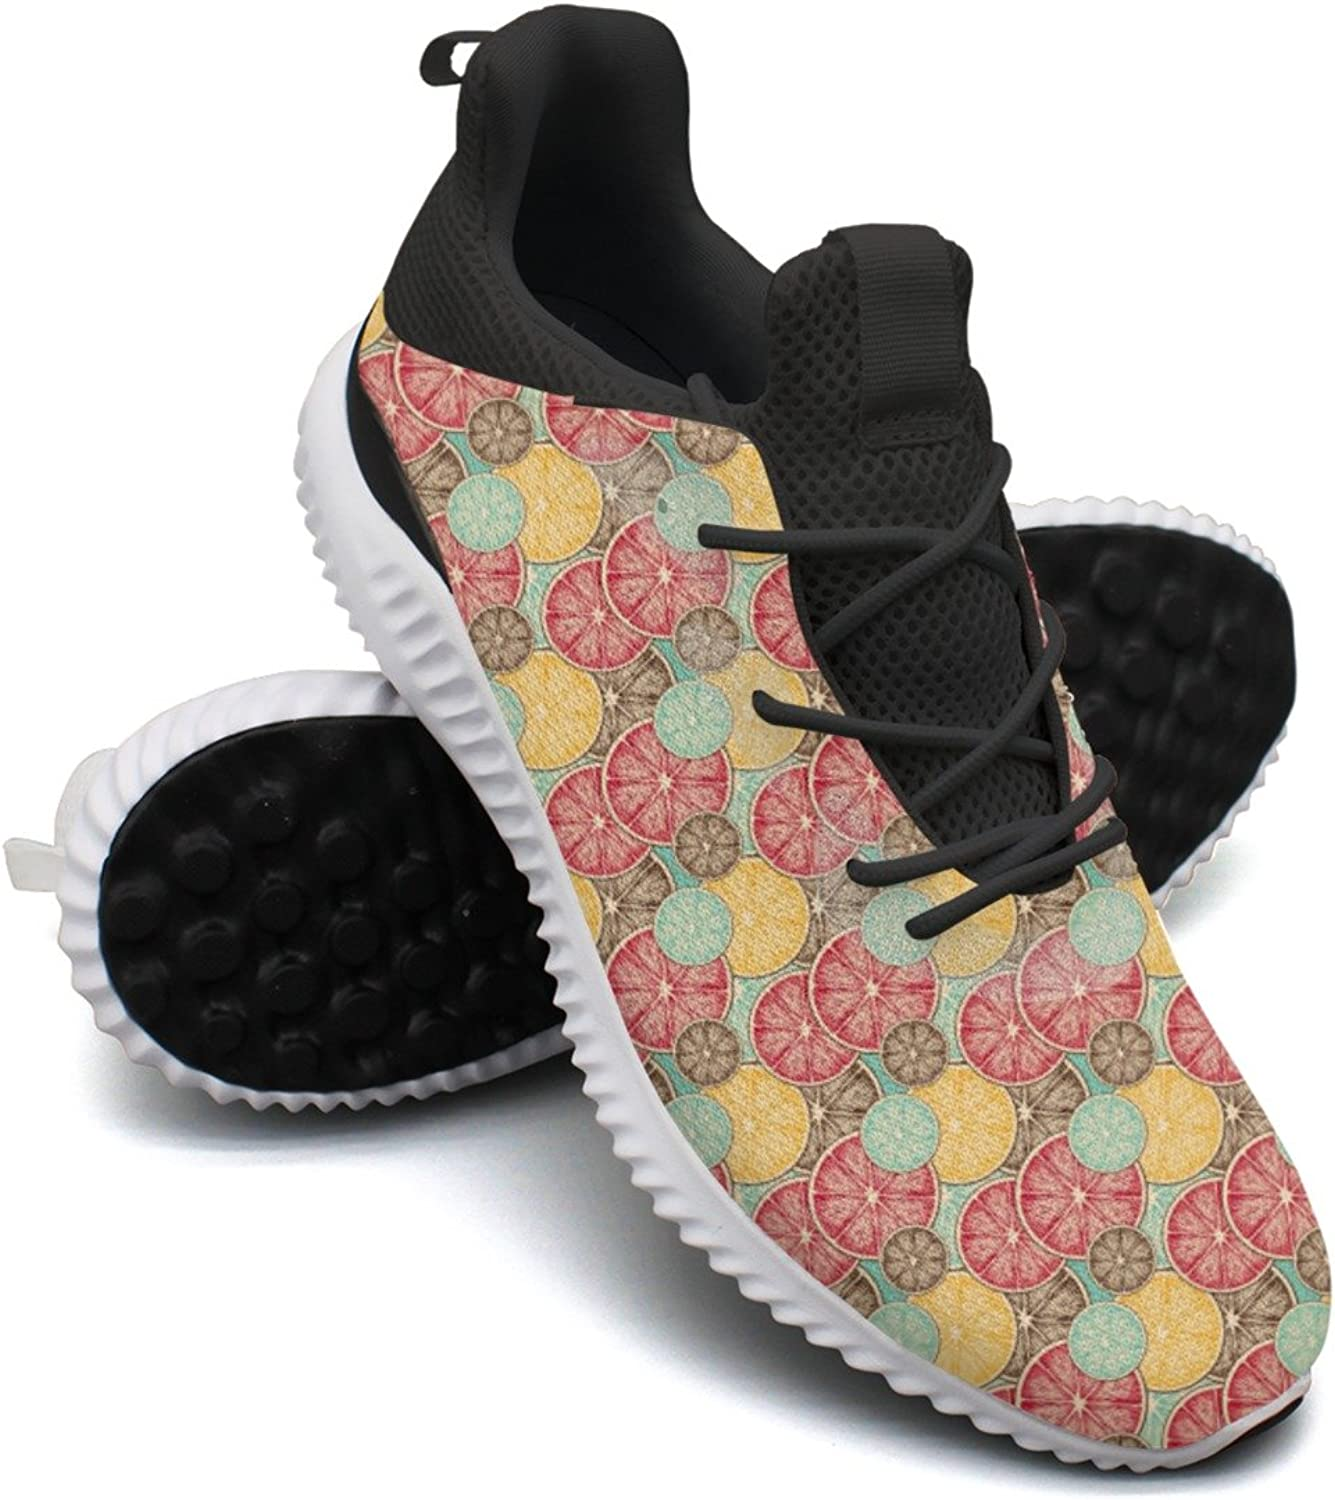 Lemon Slice Leisure Casual Running shoes Women Net Novelty colorful